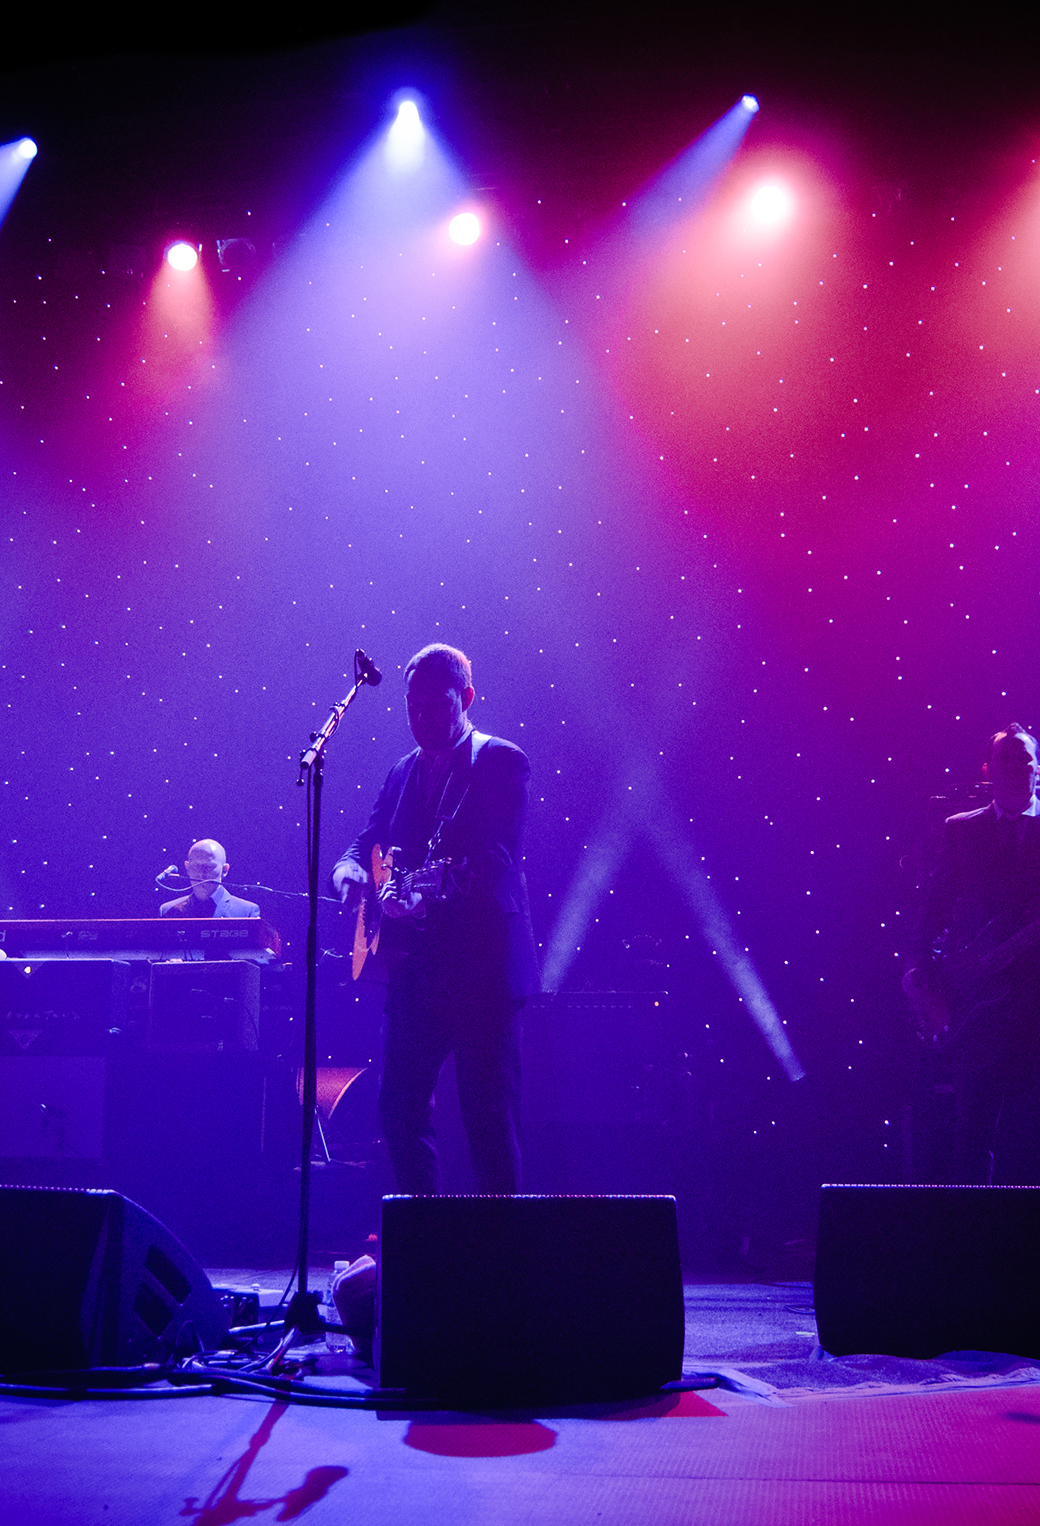 David Gray Concert Live 3Wallpapers iphone Parallax David Gray Concert Live